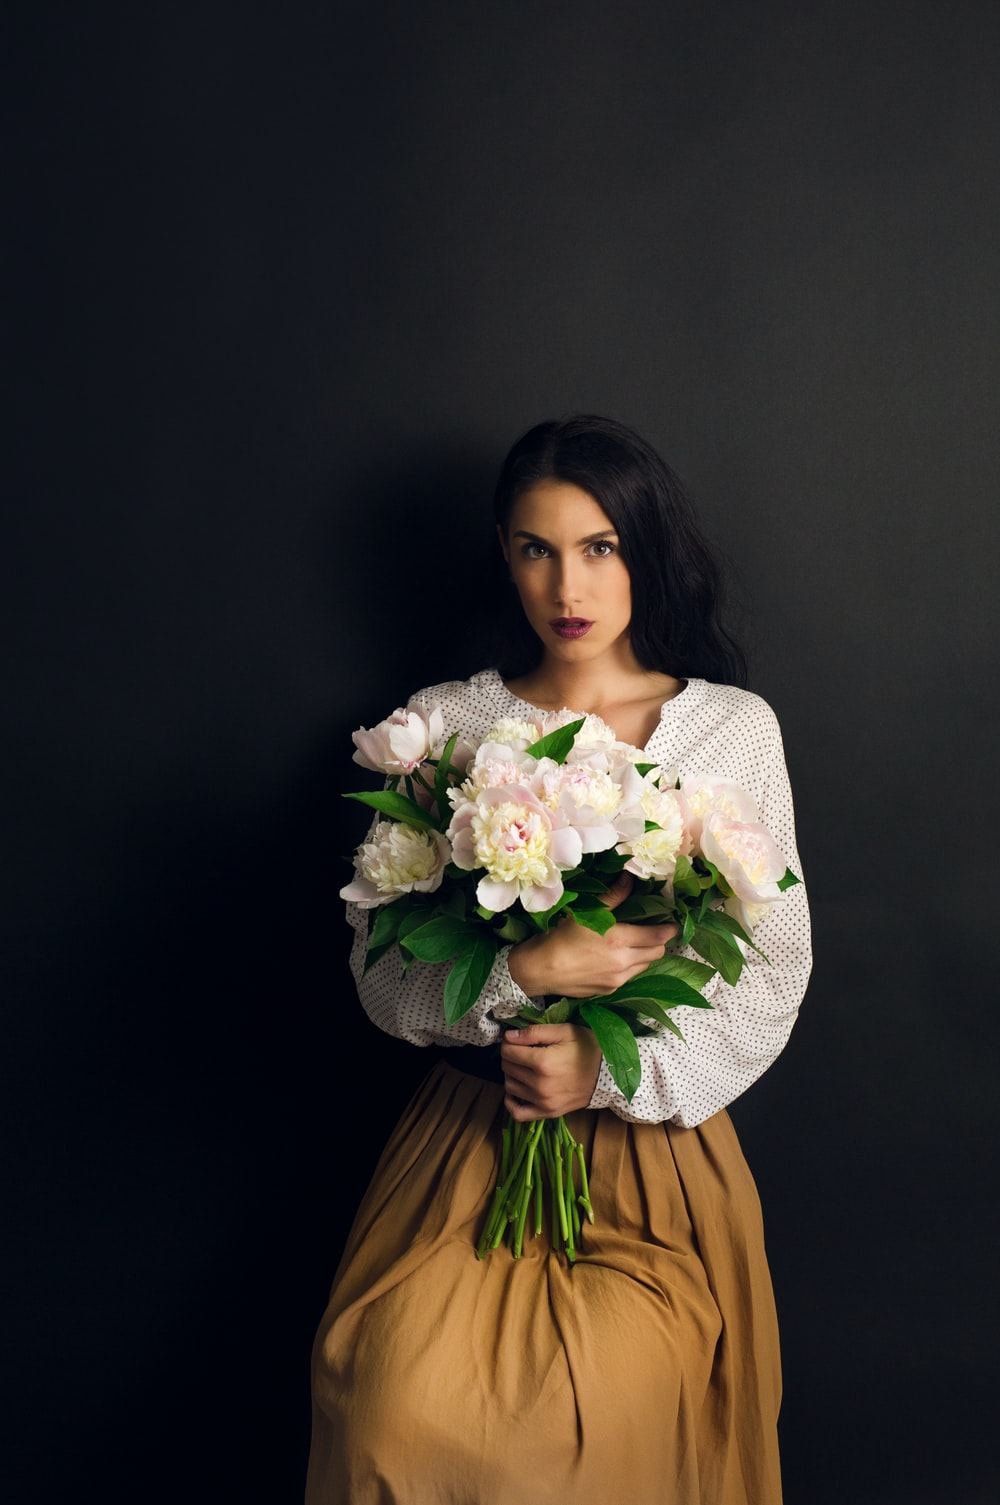 woman in white knit sweater holding bouquet of flowers